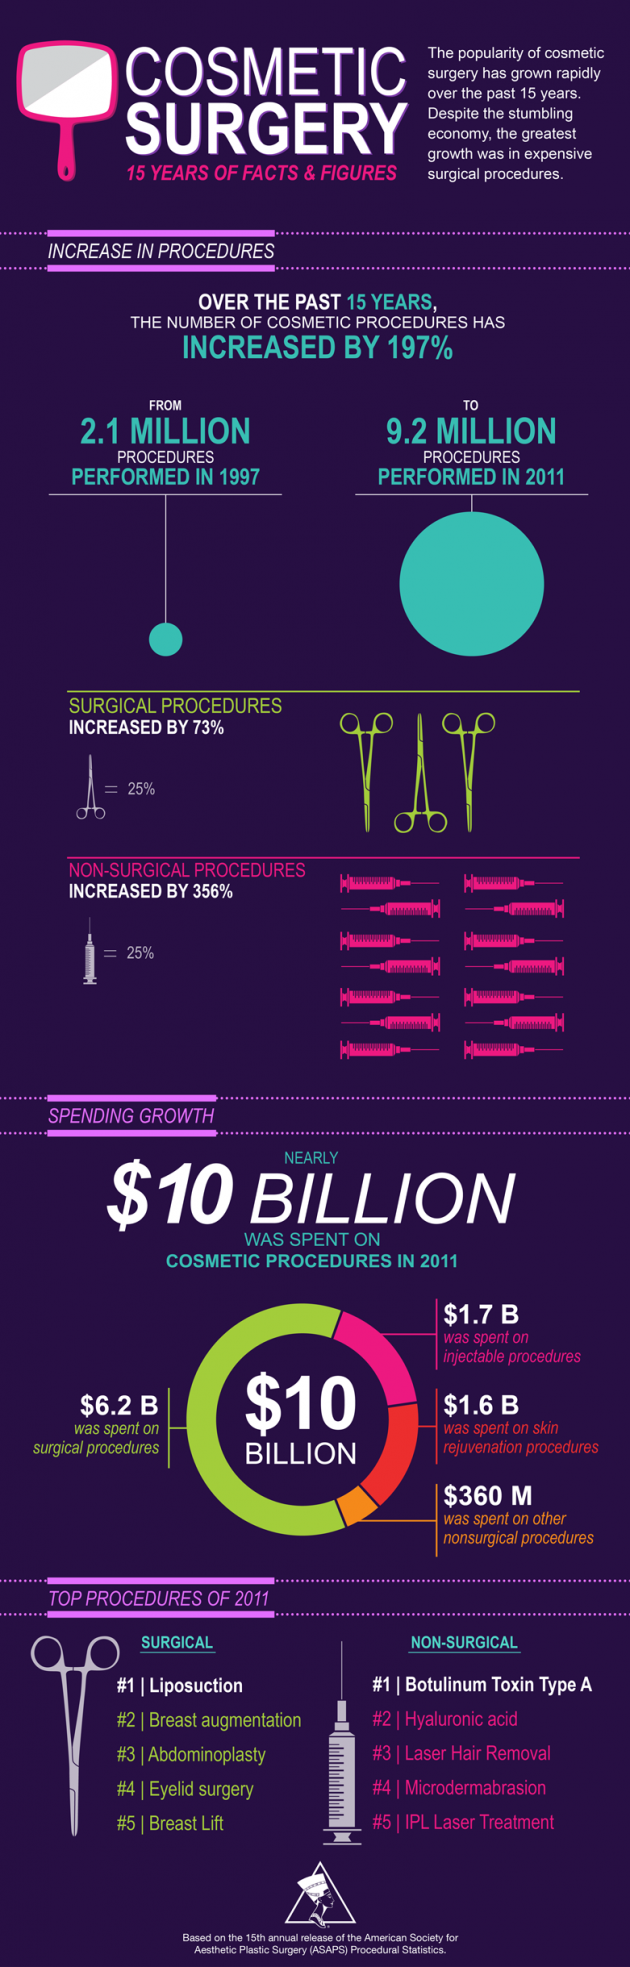 Facts and figures: 15 years of cosmetic surgery statistics [INFOGRAPHIC]